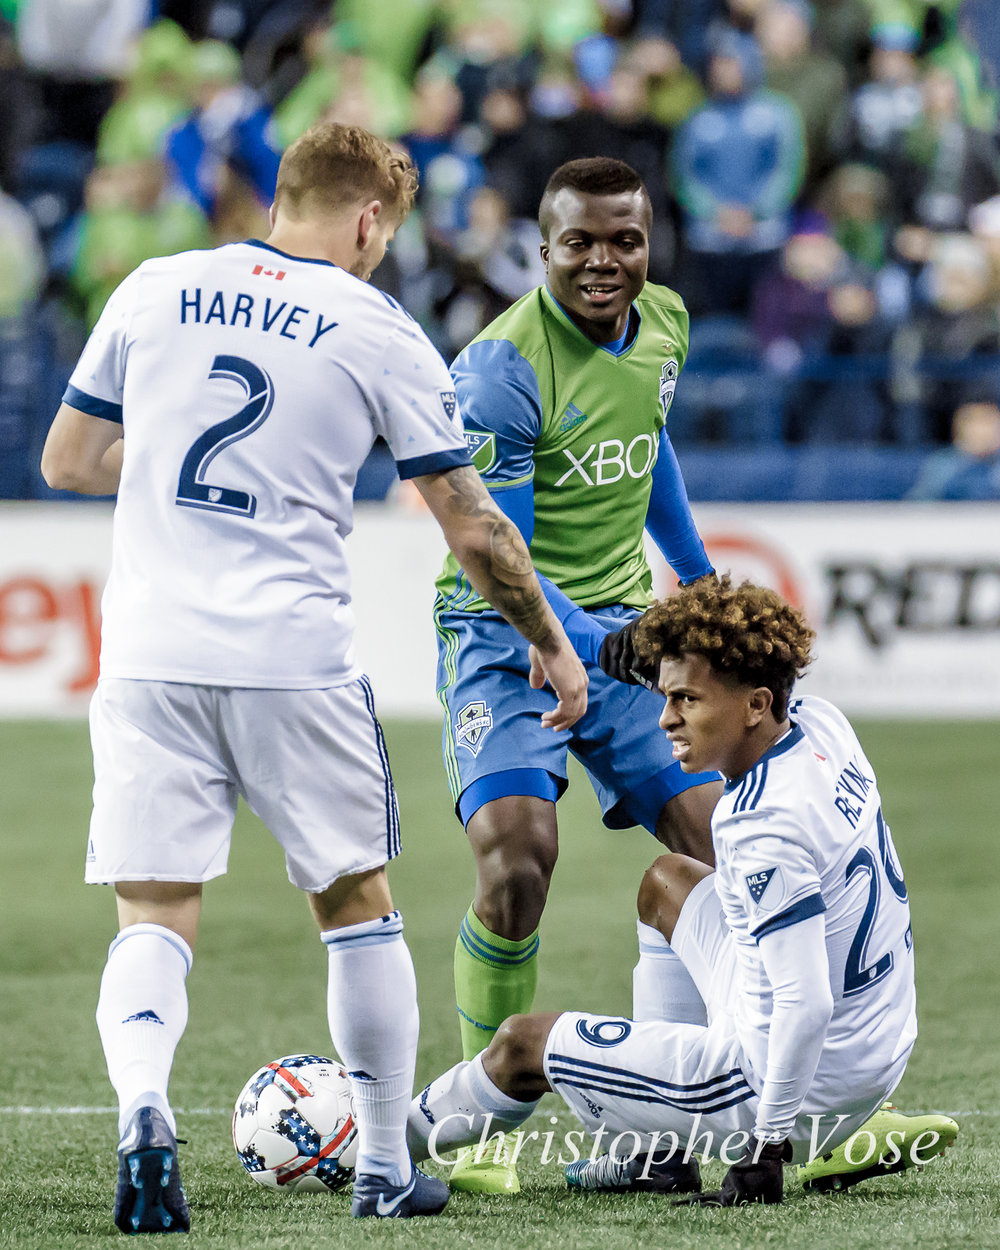 2017-11-02 Jordan Harvey, Nouhou Tolo, and Yordy Reyna.jpg